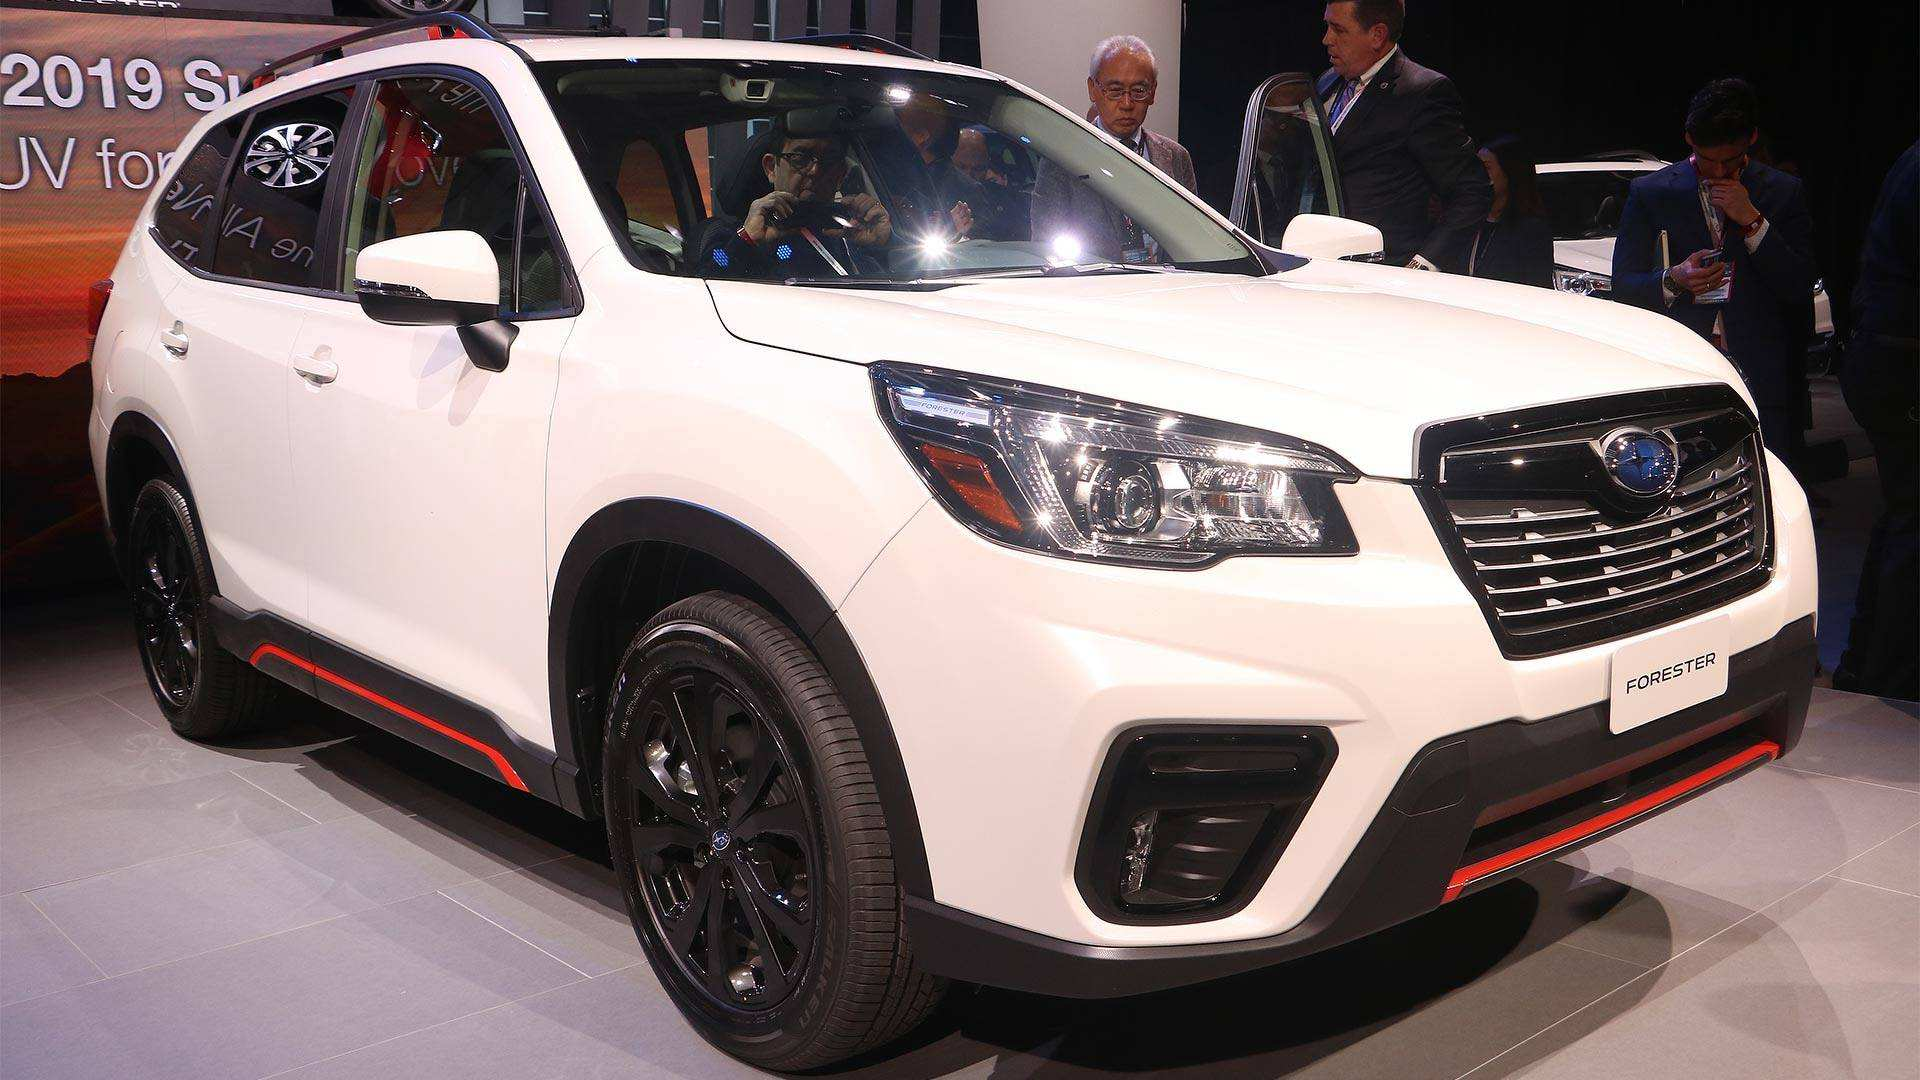 65 Gallery of Subaru Forester 2019 Gas Mileage Specs with Subaru Forester 2019 Gas Mileage